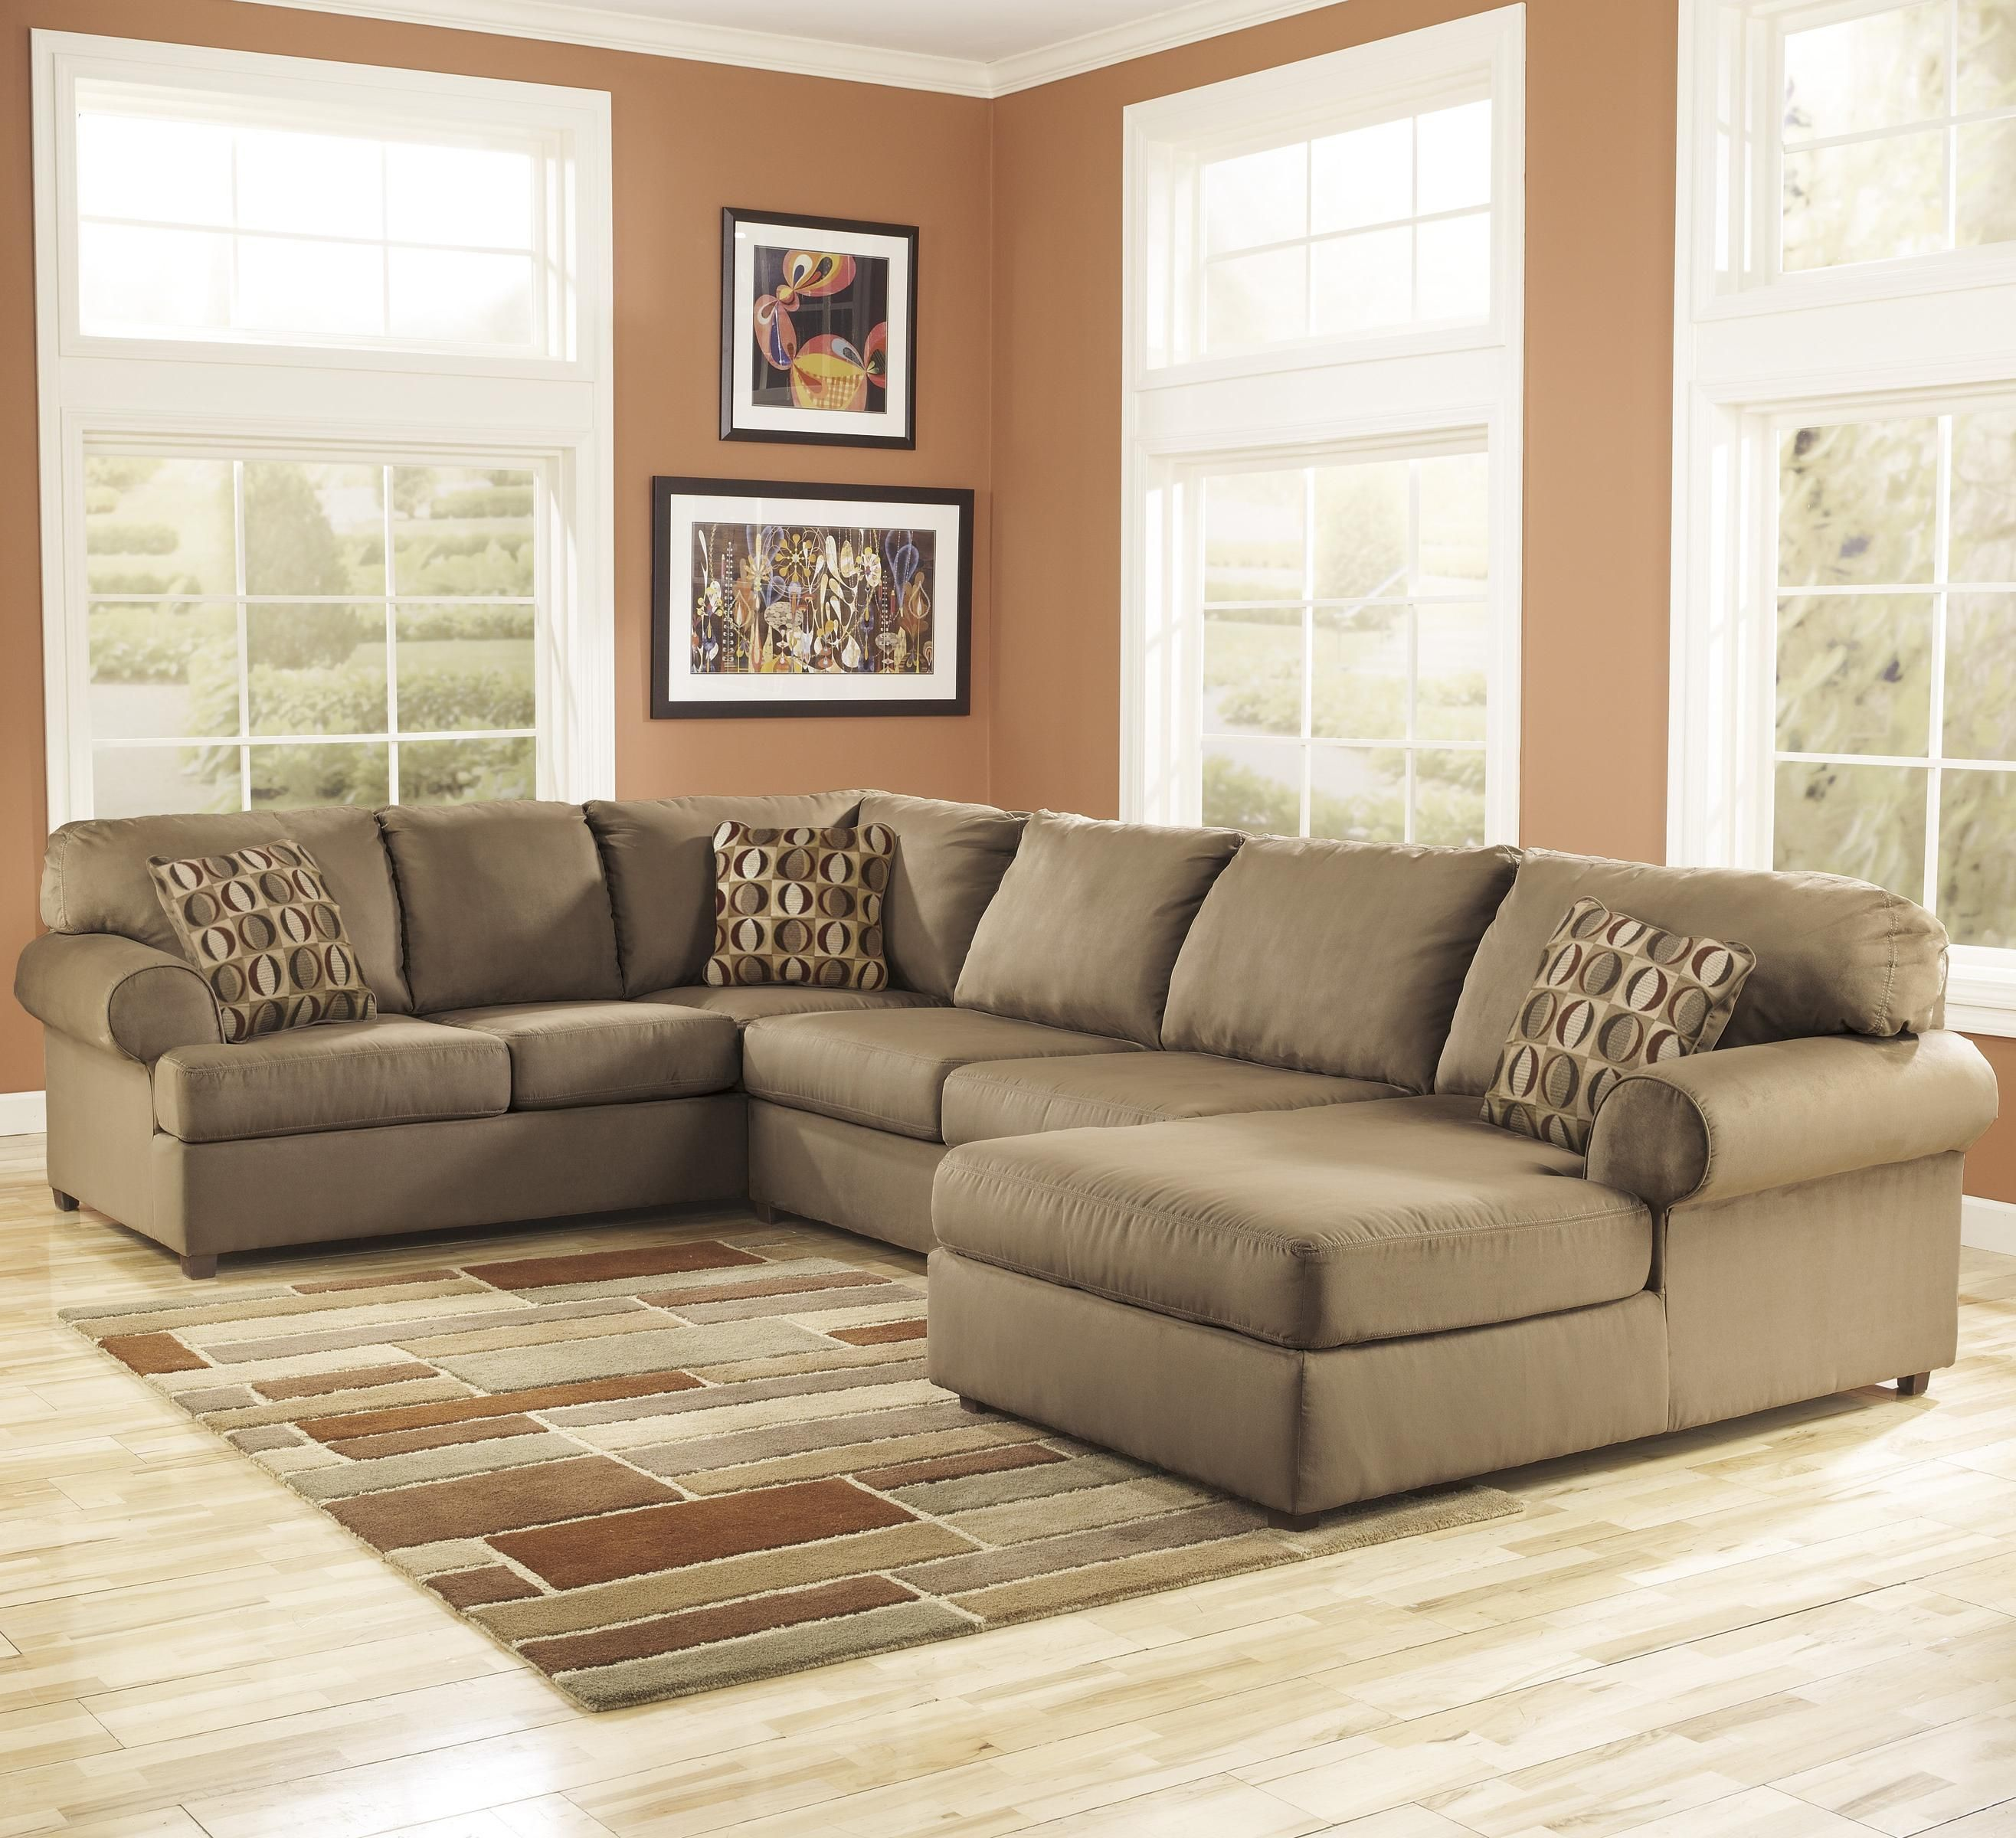 Cowan Mocha Roll Arm Right Facing Corner Chaise Sectional By Signature Design By Big Lots Furniture Ashley Furniture Living Room Sectional Sofas Living Room